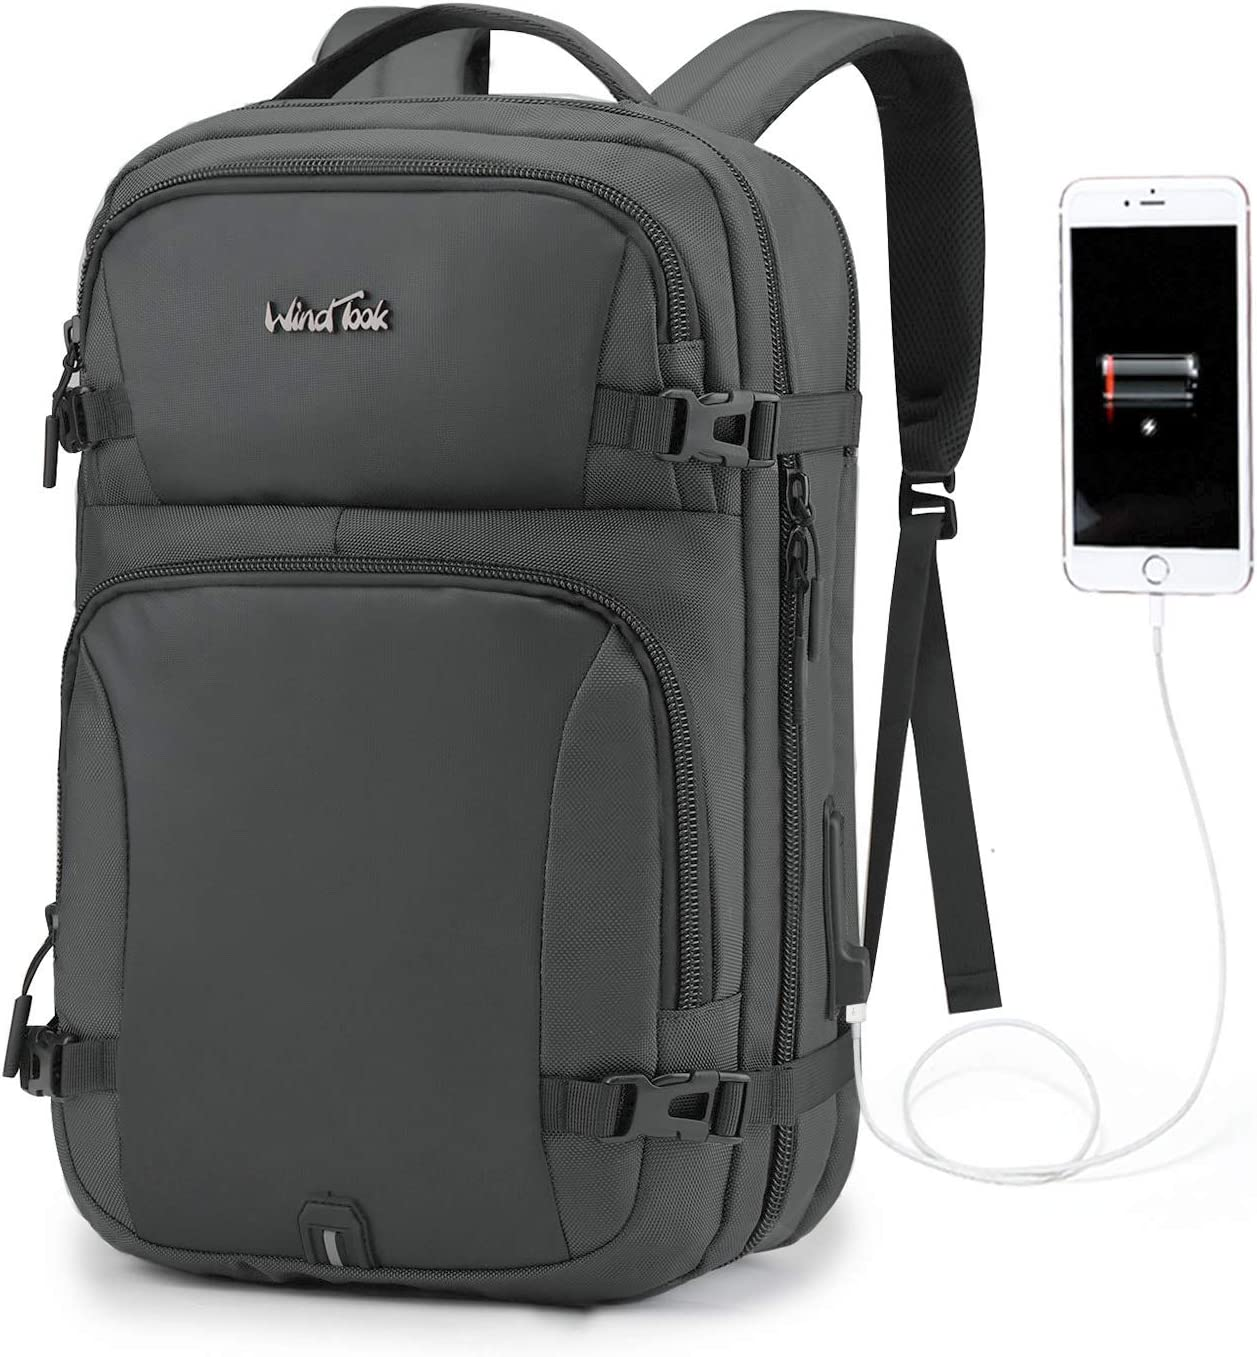 WindTook 15.6inch Travel Business Laptop Backpack with USB Charging Port for Women Men,School College Backpack